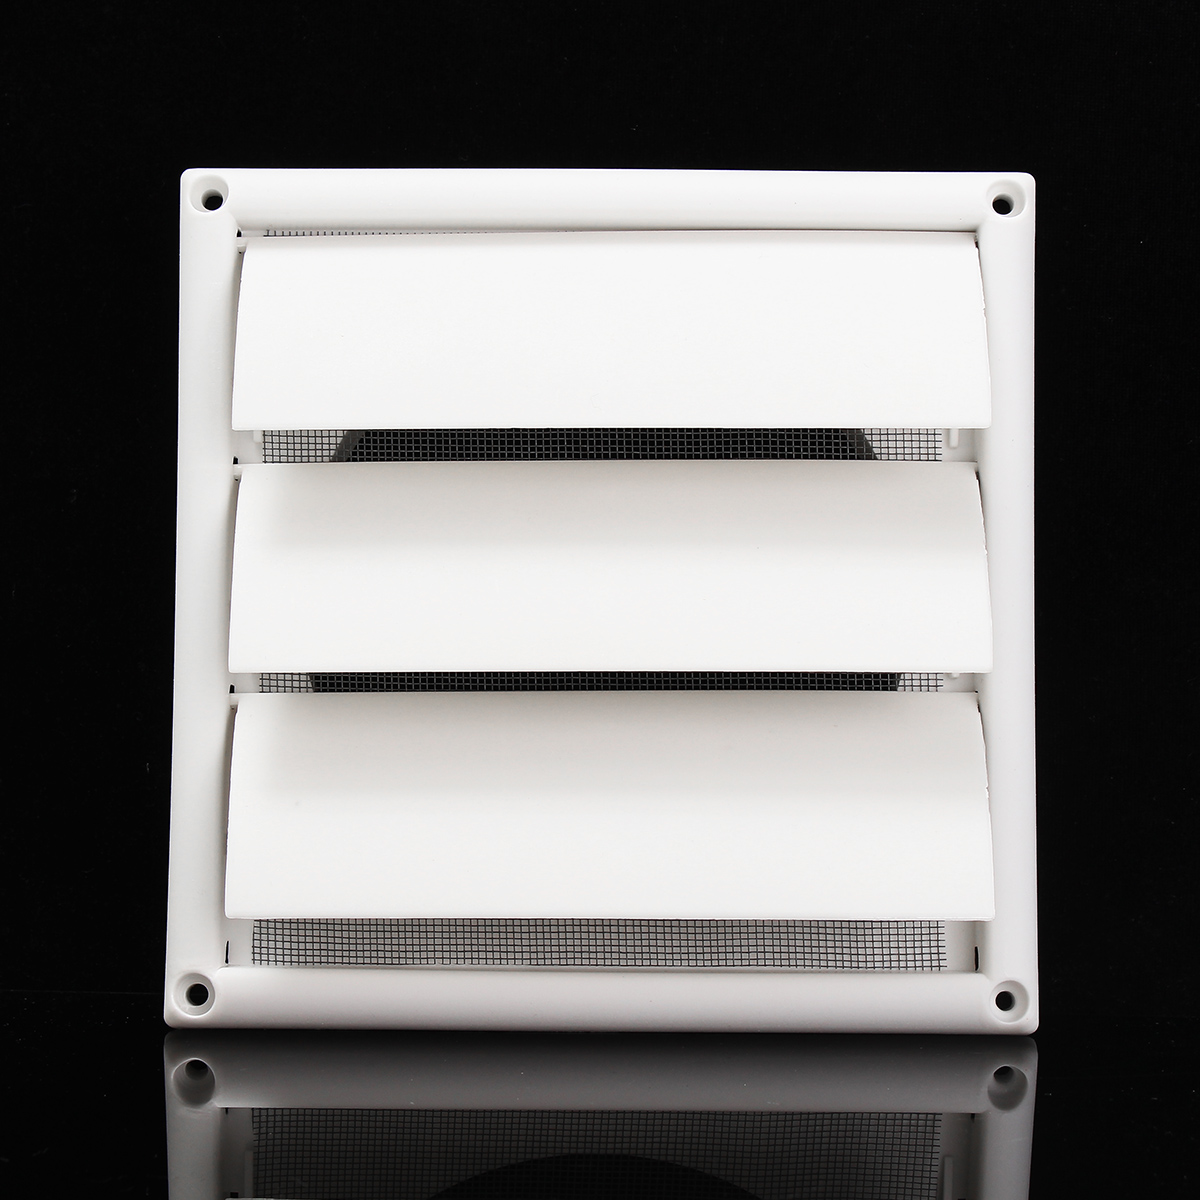 Air Vent Grille Ventilation Cover Plastic White Wall Grilles Duct 200x200x40mm